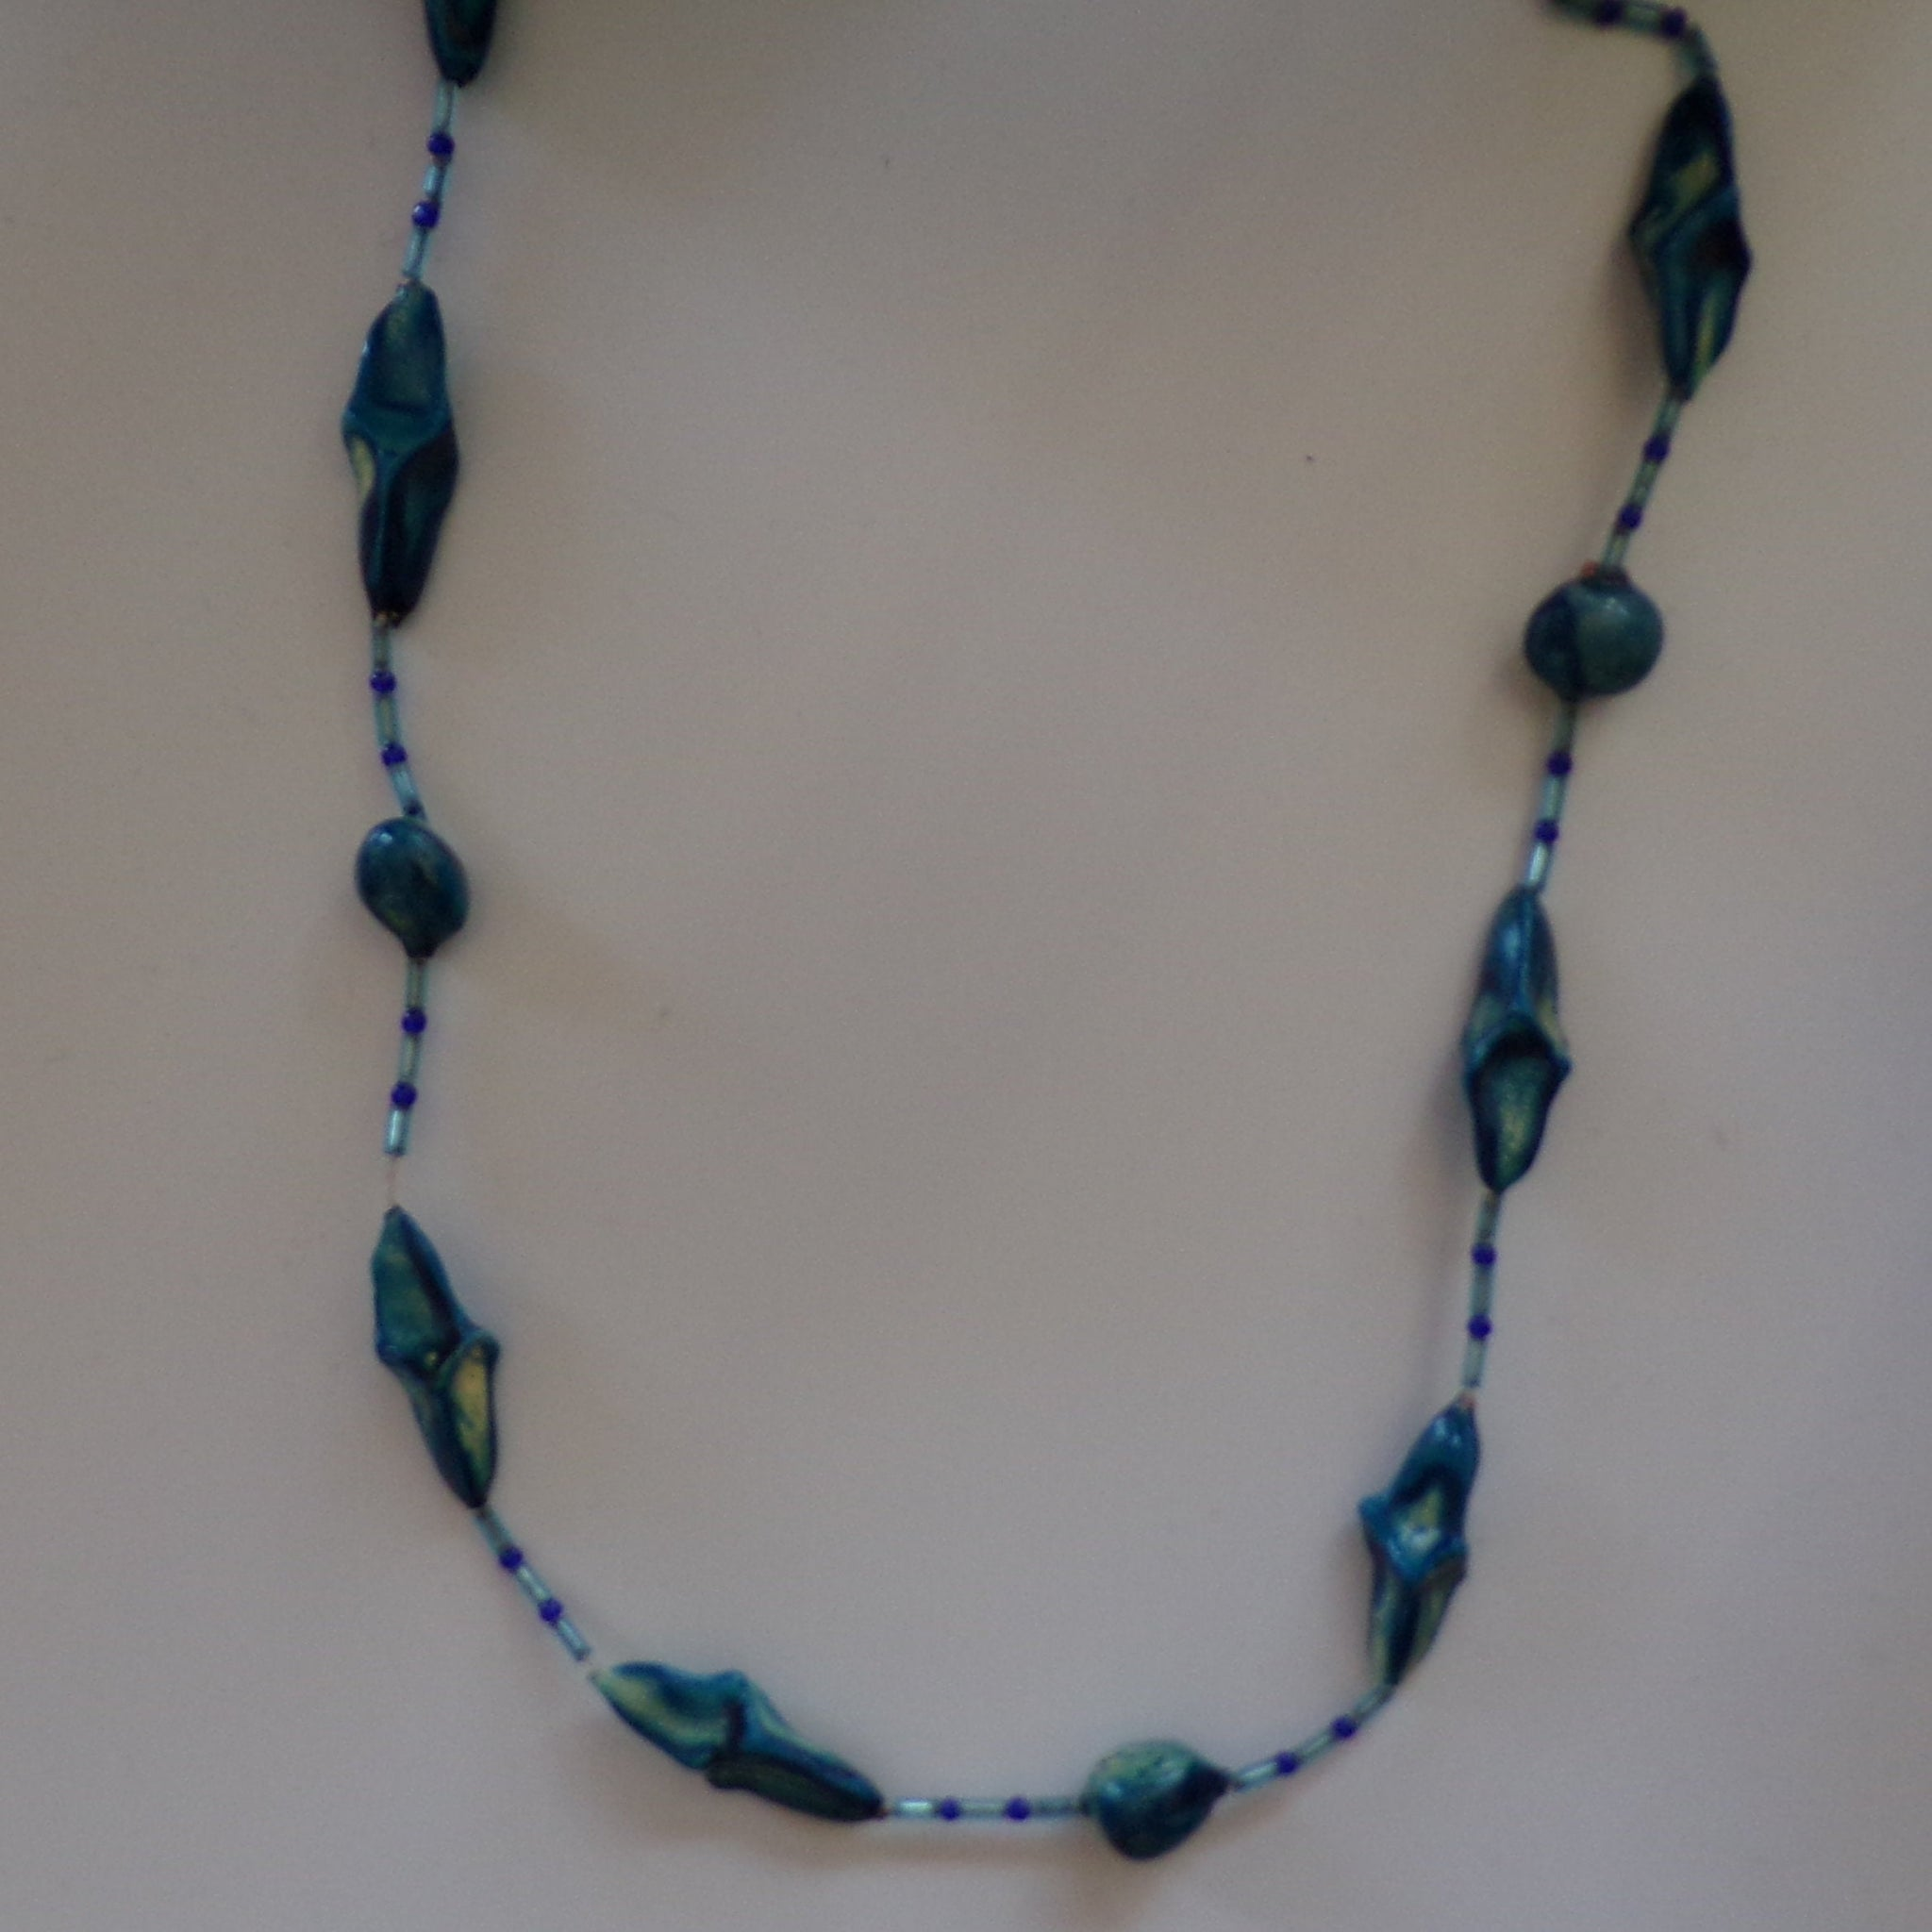 GLAZED WOODEN BEAD necklace 1970's 1980's (C6)